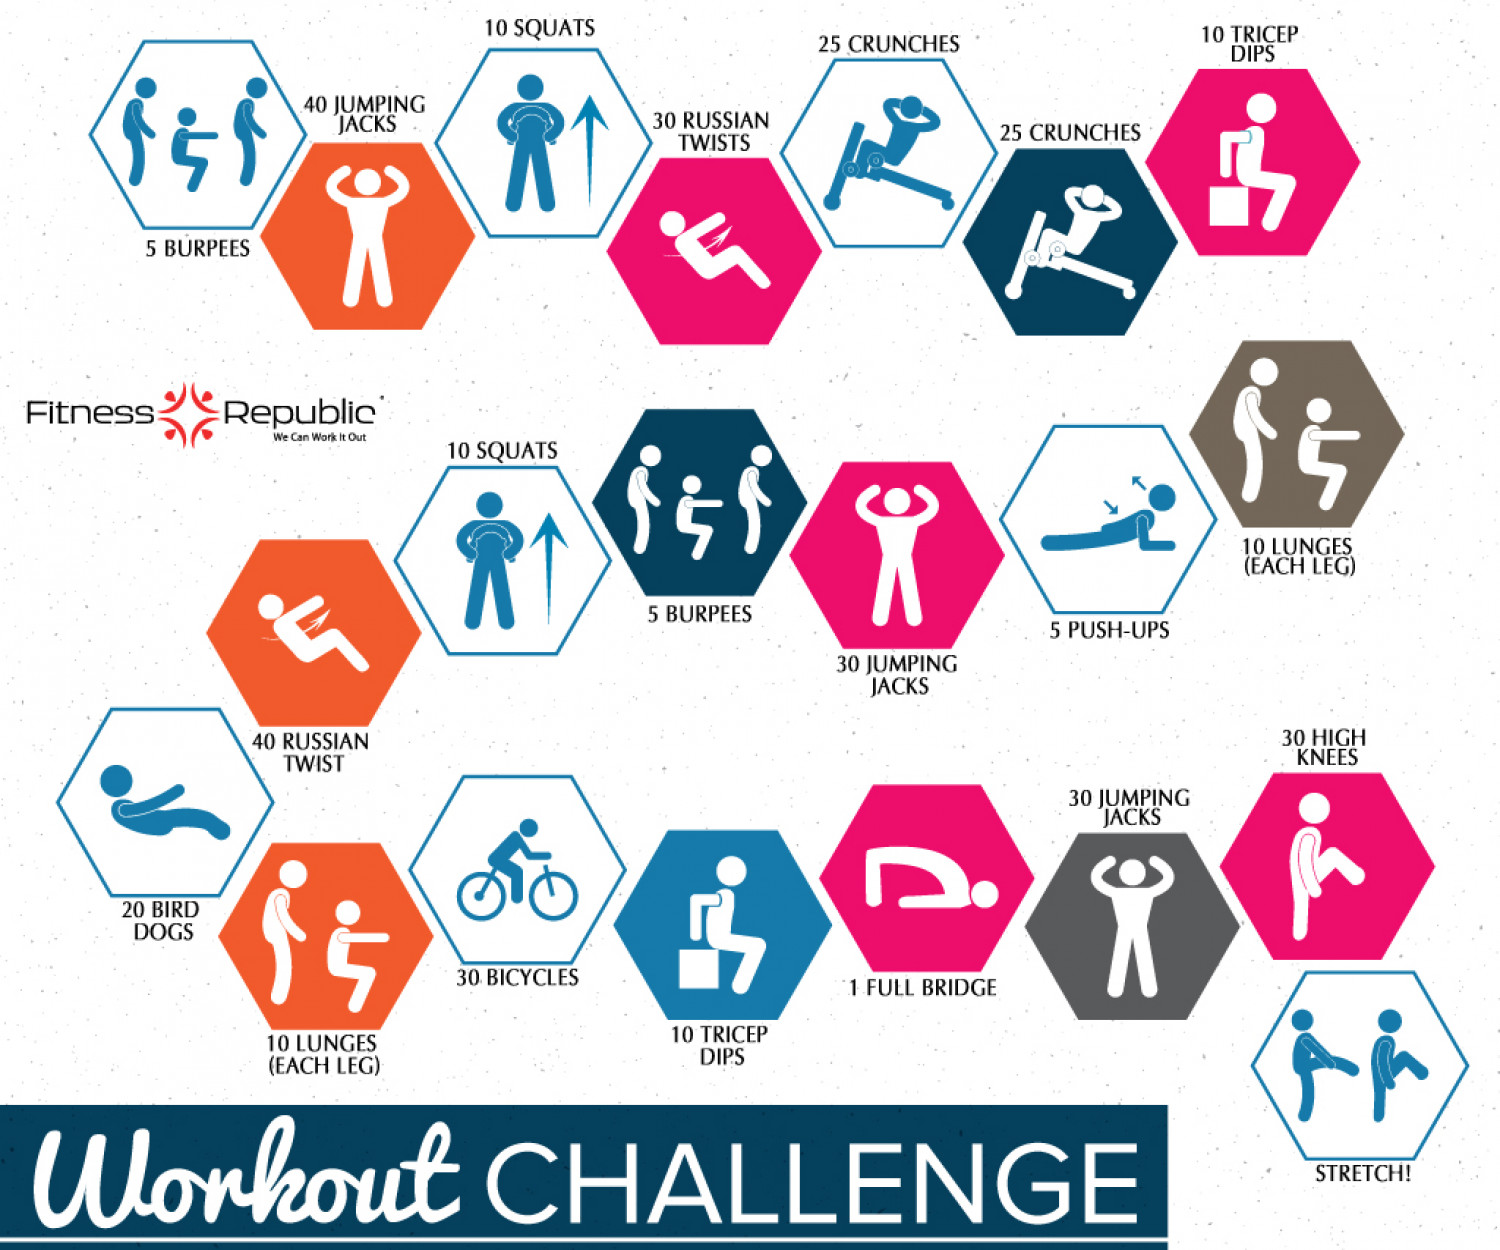 Workout Challenge Infographic